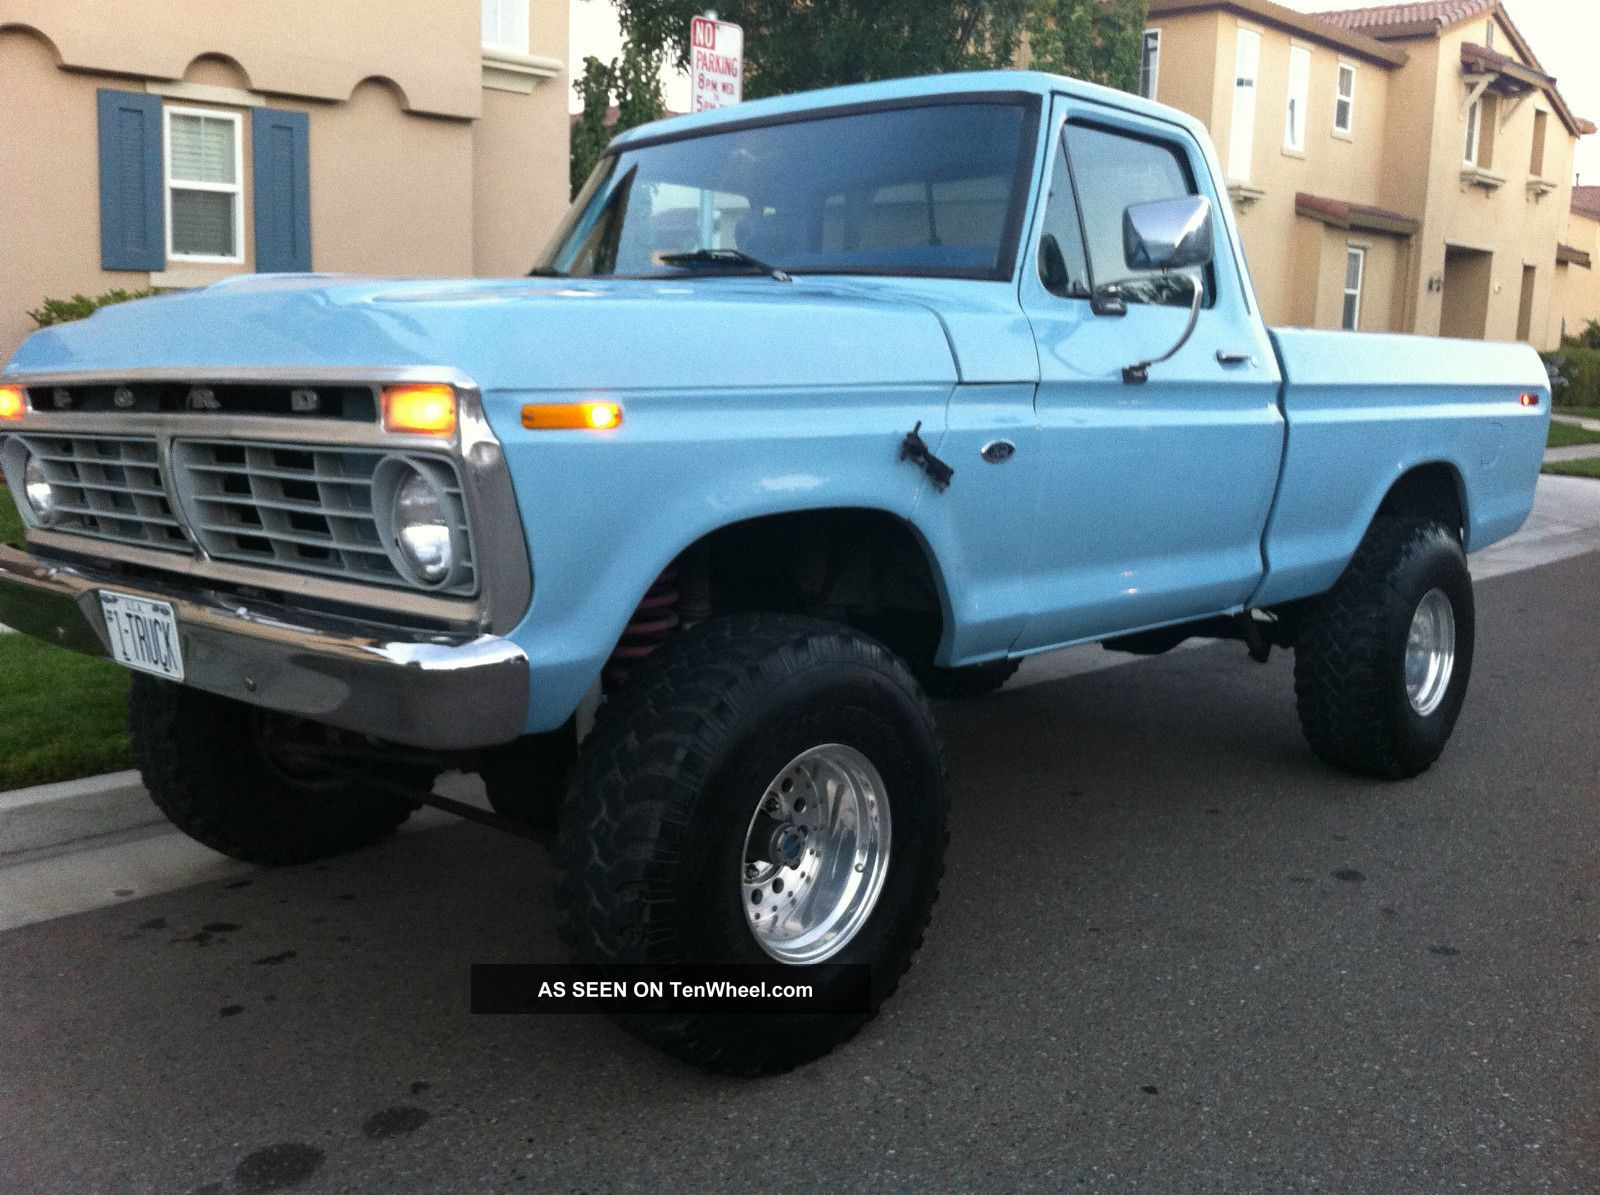 1977 ford f150 custom 1977 ford f150 short bed 4x4 pickup v8 f 150 photo [ 1600 x 1195 Pixel ]